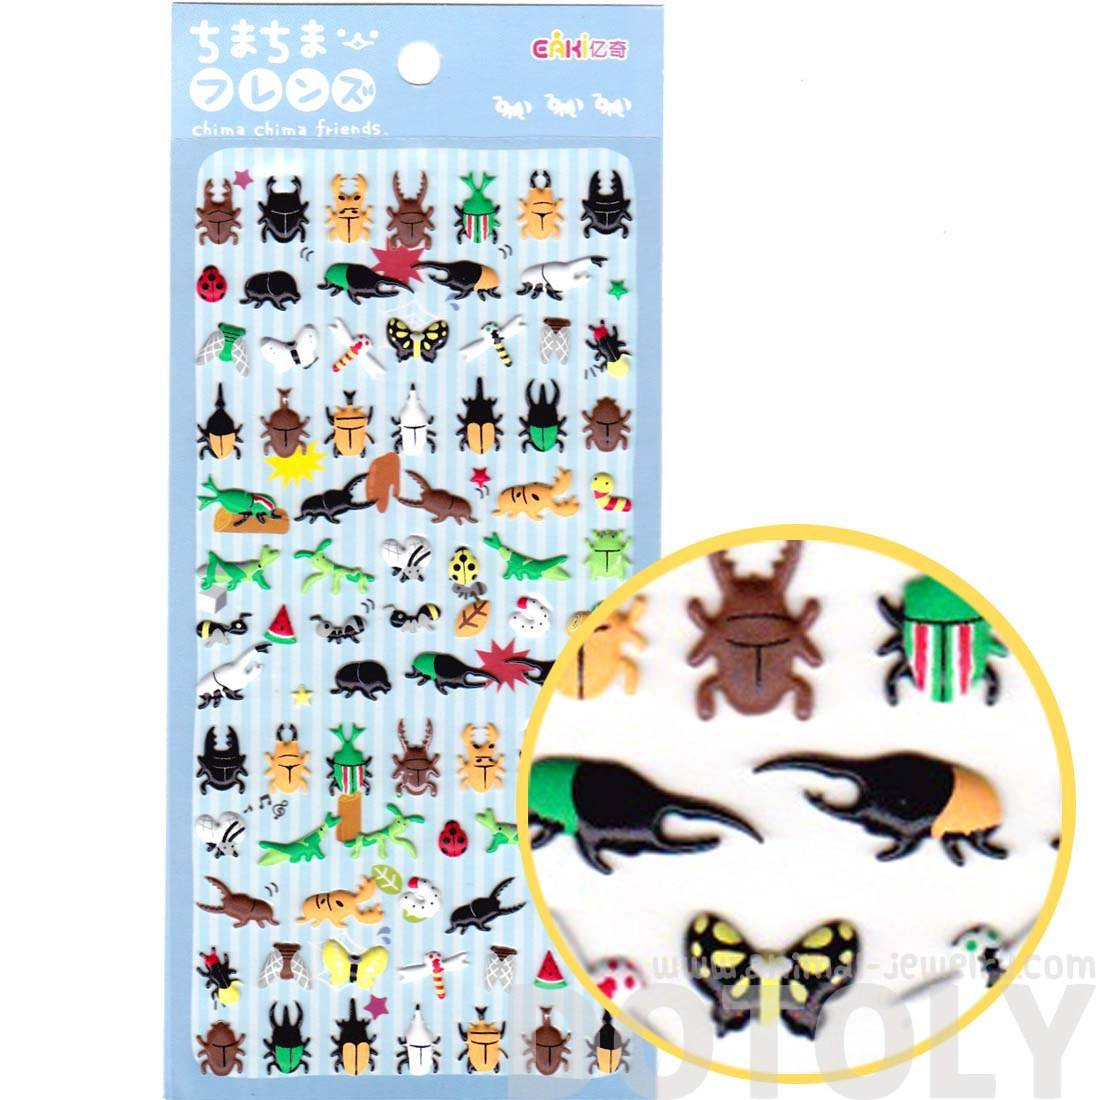 Beetle Bugs Butterflies Shaped Insect Puffy Stickers for Scrapbooking